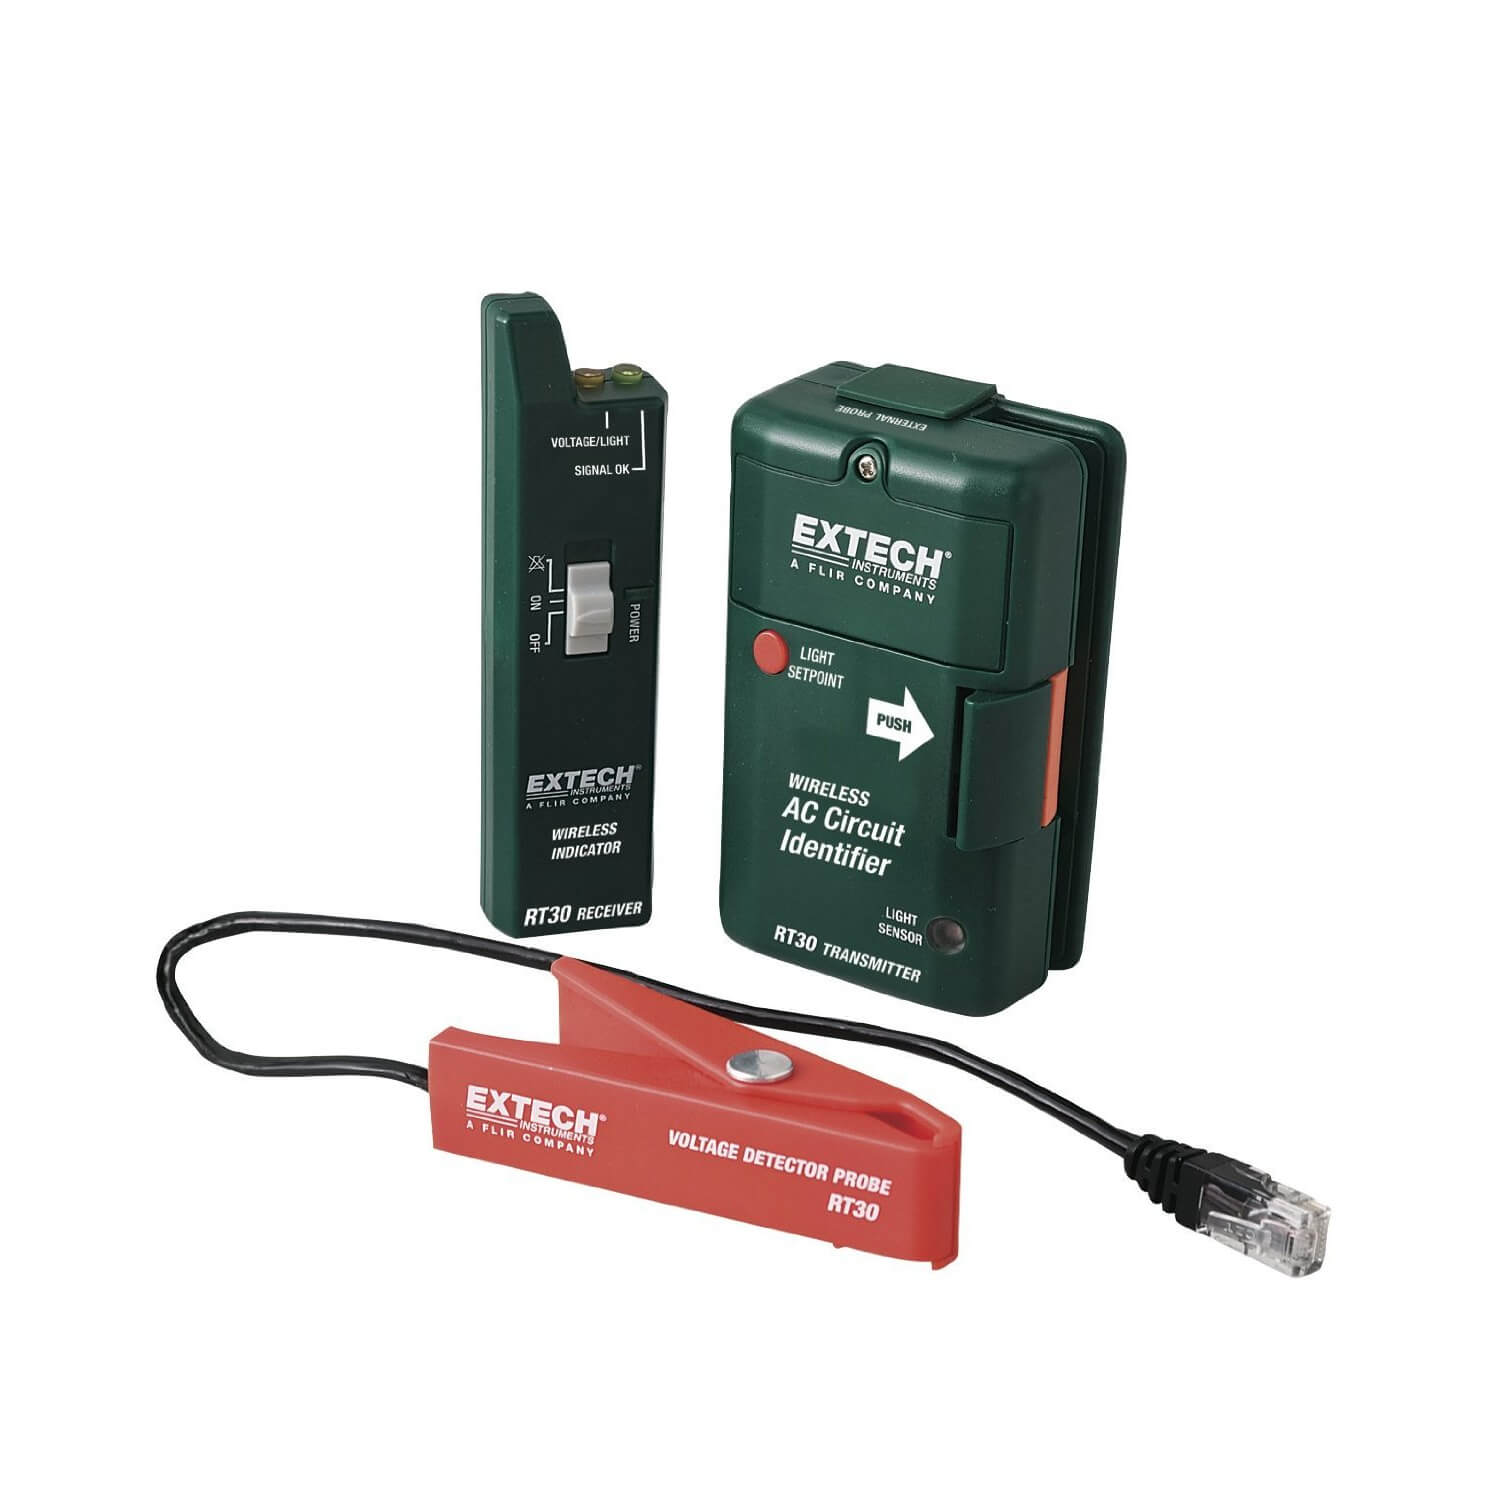 Extech RT30 AC Circuit Identifier with Wireless Transmission